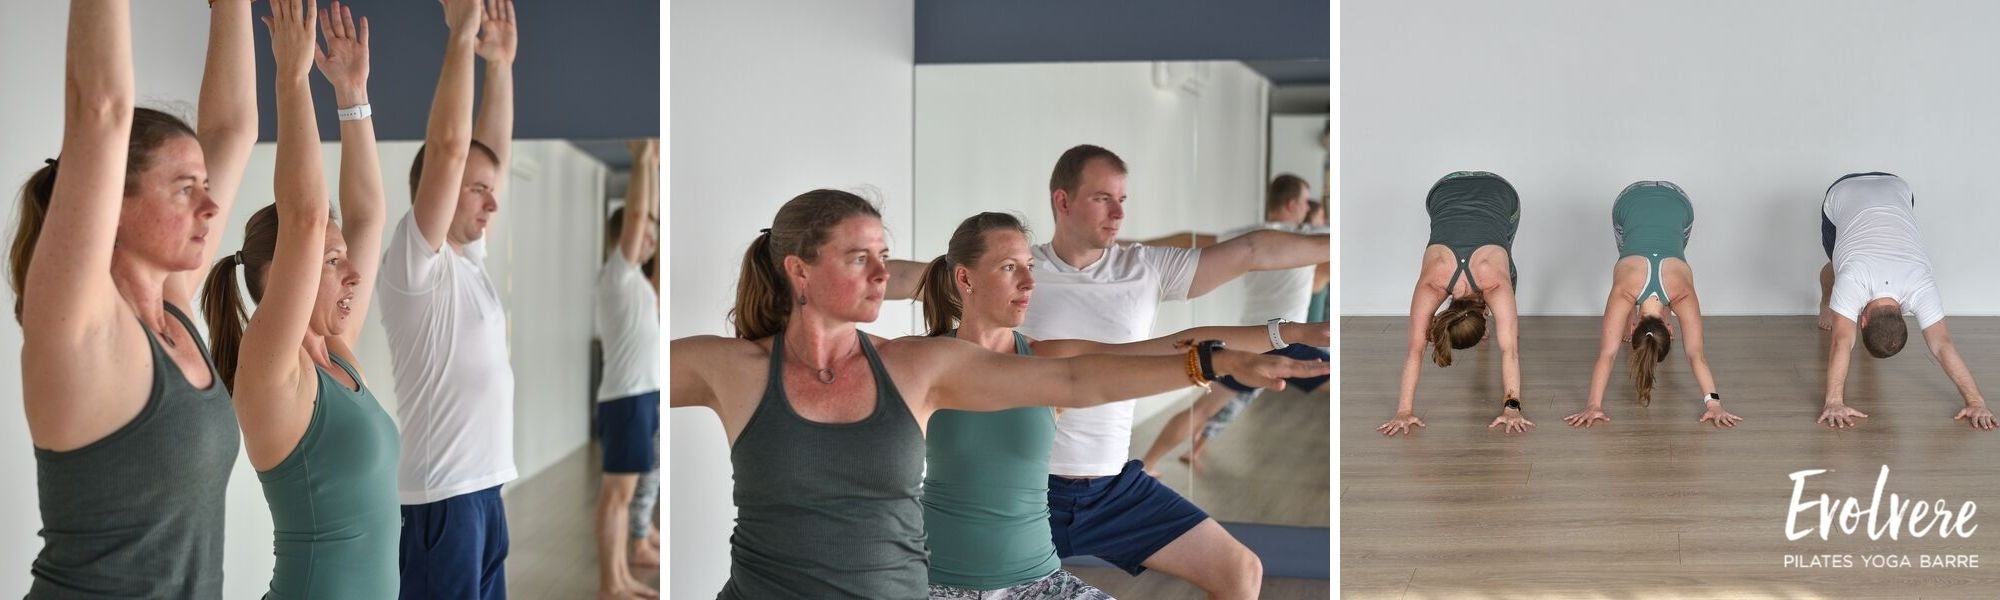 108 Sun Salutes Yoga workshop in Lane Cove Sydney at Evolvere Yoga studio